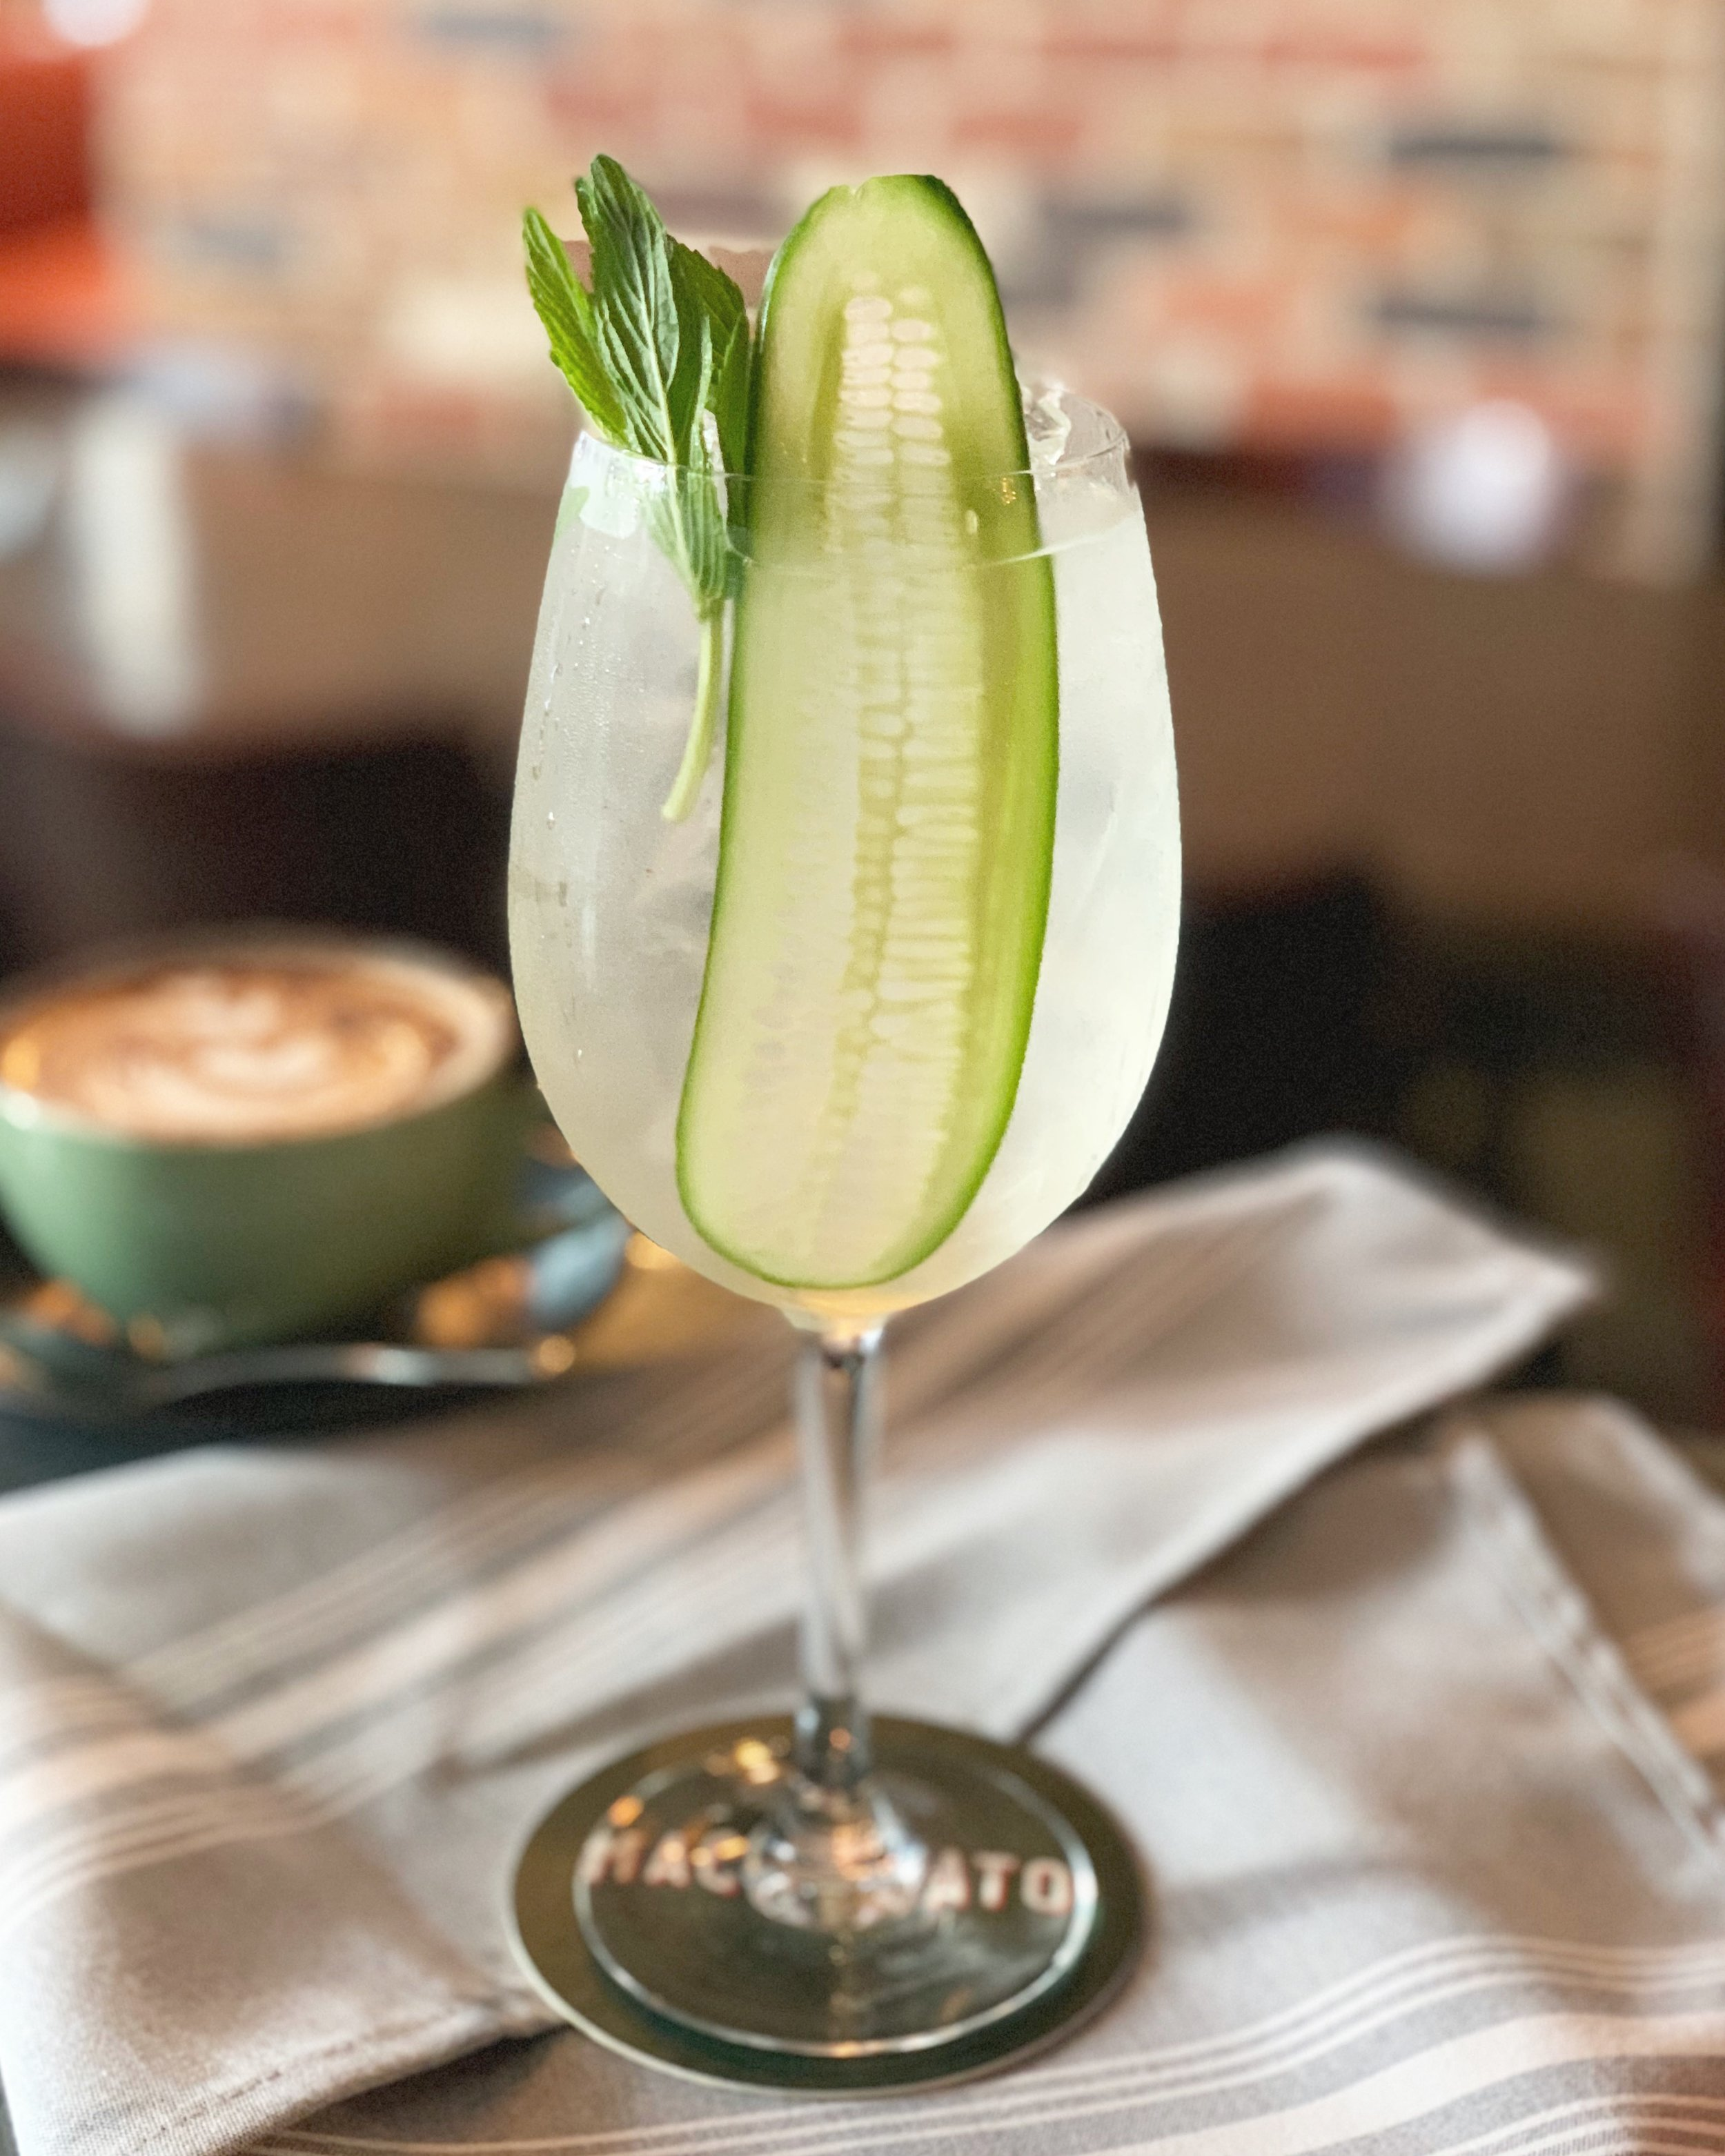 12-18 June - 🍸 A sunny Saturday afternoon calls for our Elderflower Cobbler - gin, sparkling wine, cucumber, a splash of lemon juice and elderflower water.~Summer nostalgia, you say? Guilty as charged!